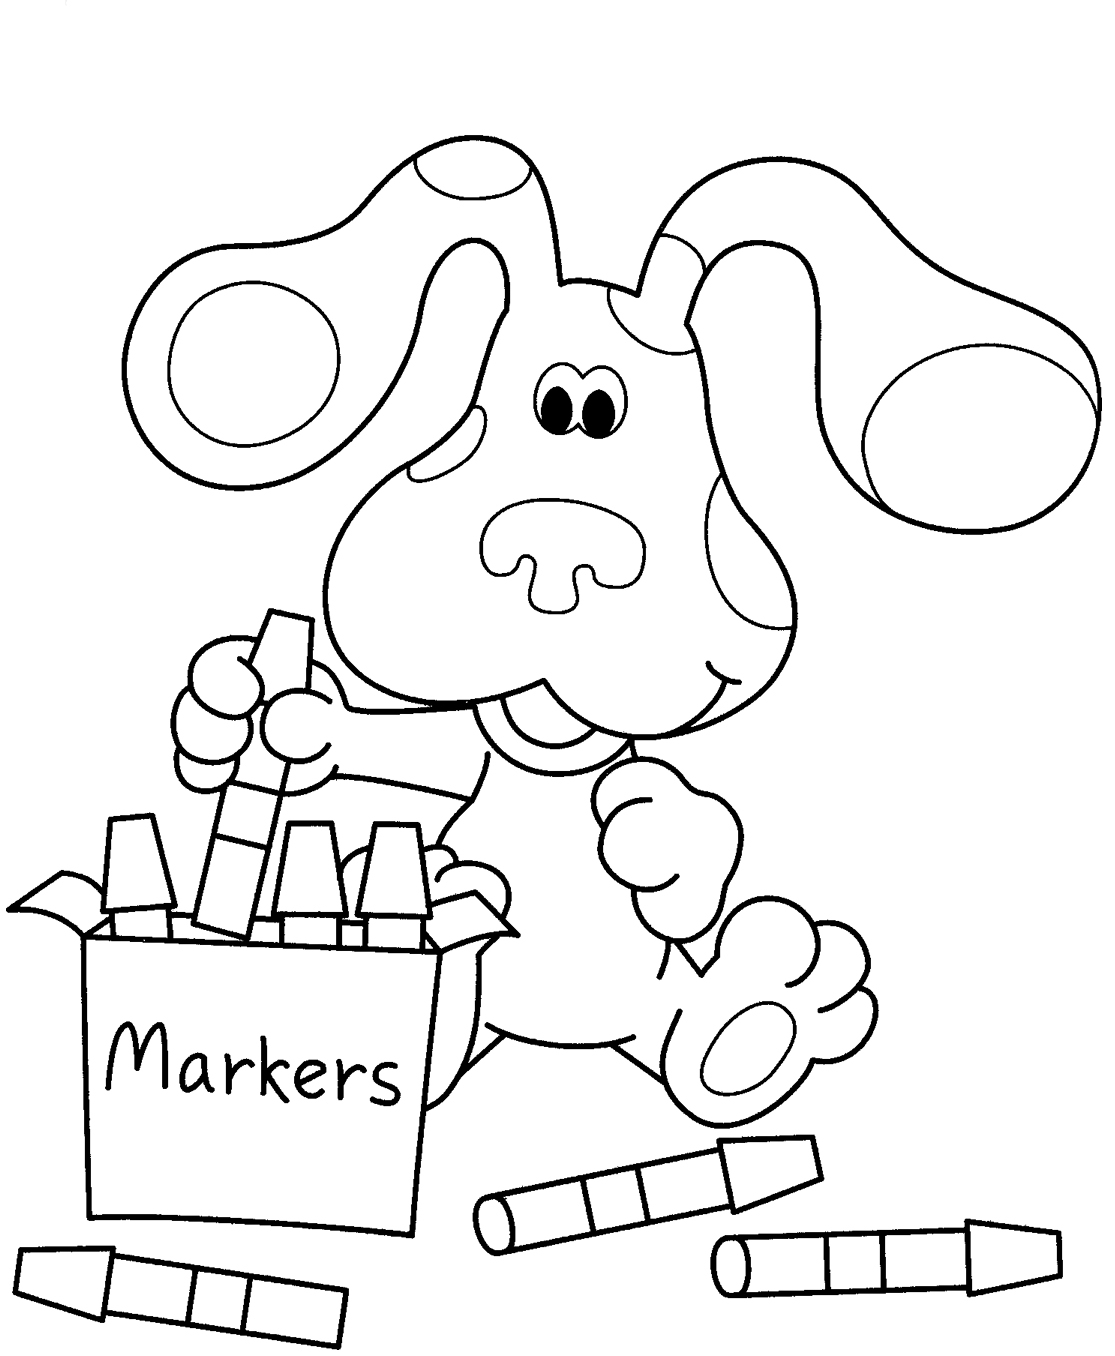 nick jr coloring pages 14 coloring kids